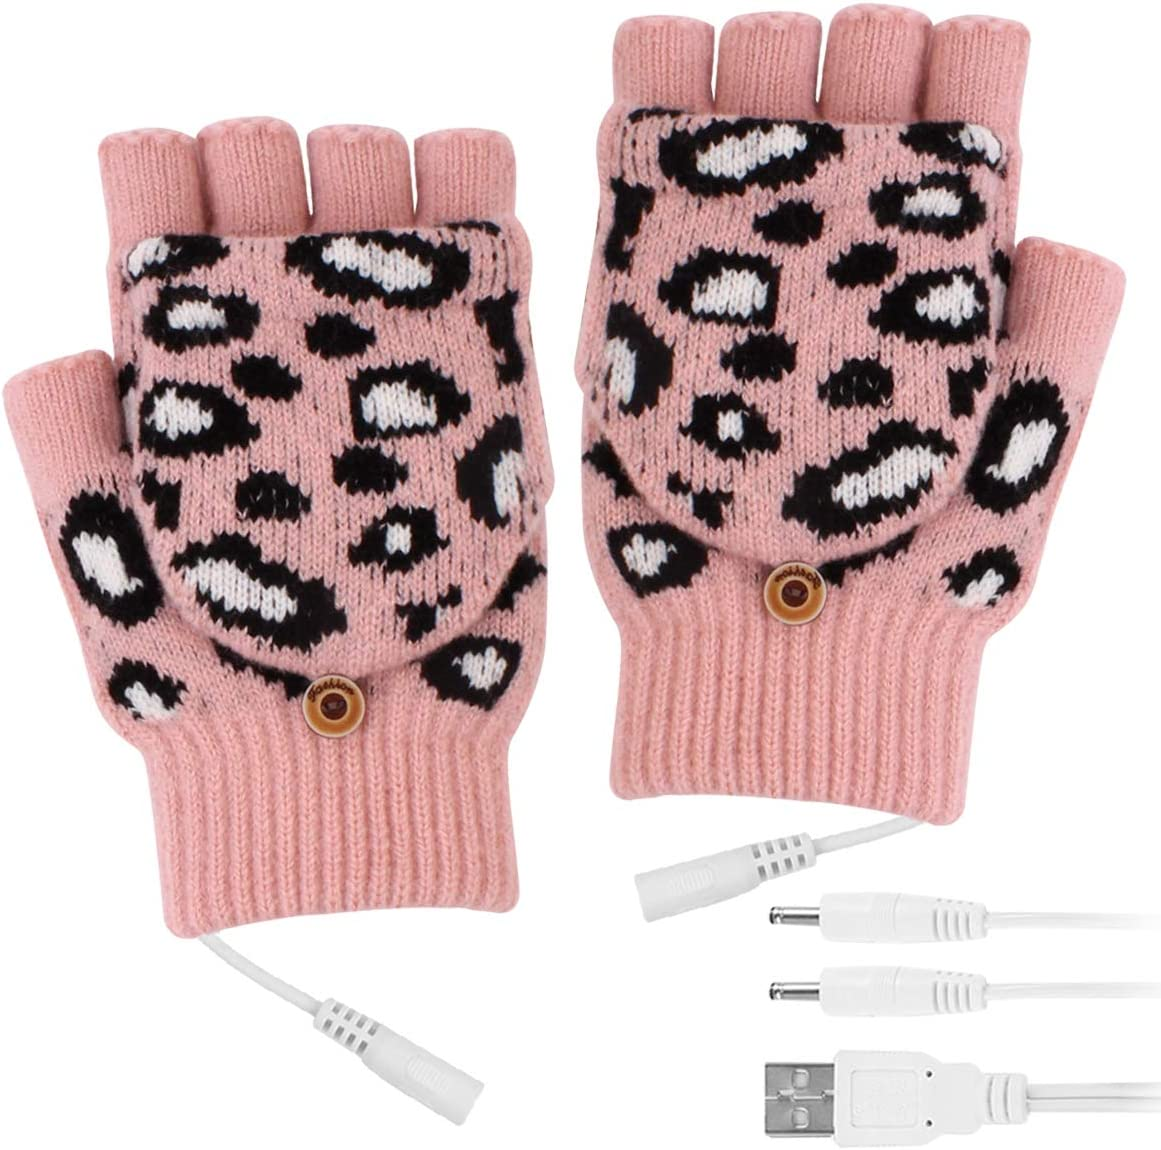 Camidy Women USB Heated Gloves Warmer Rechargeable Laptop Gloves with 3 Temperature Level 3 Timer Winter Heated Gloves with Finger Cover for Typing Hiking Cycling (Pink)